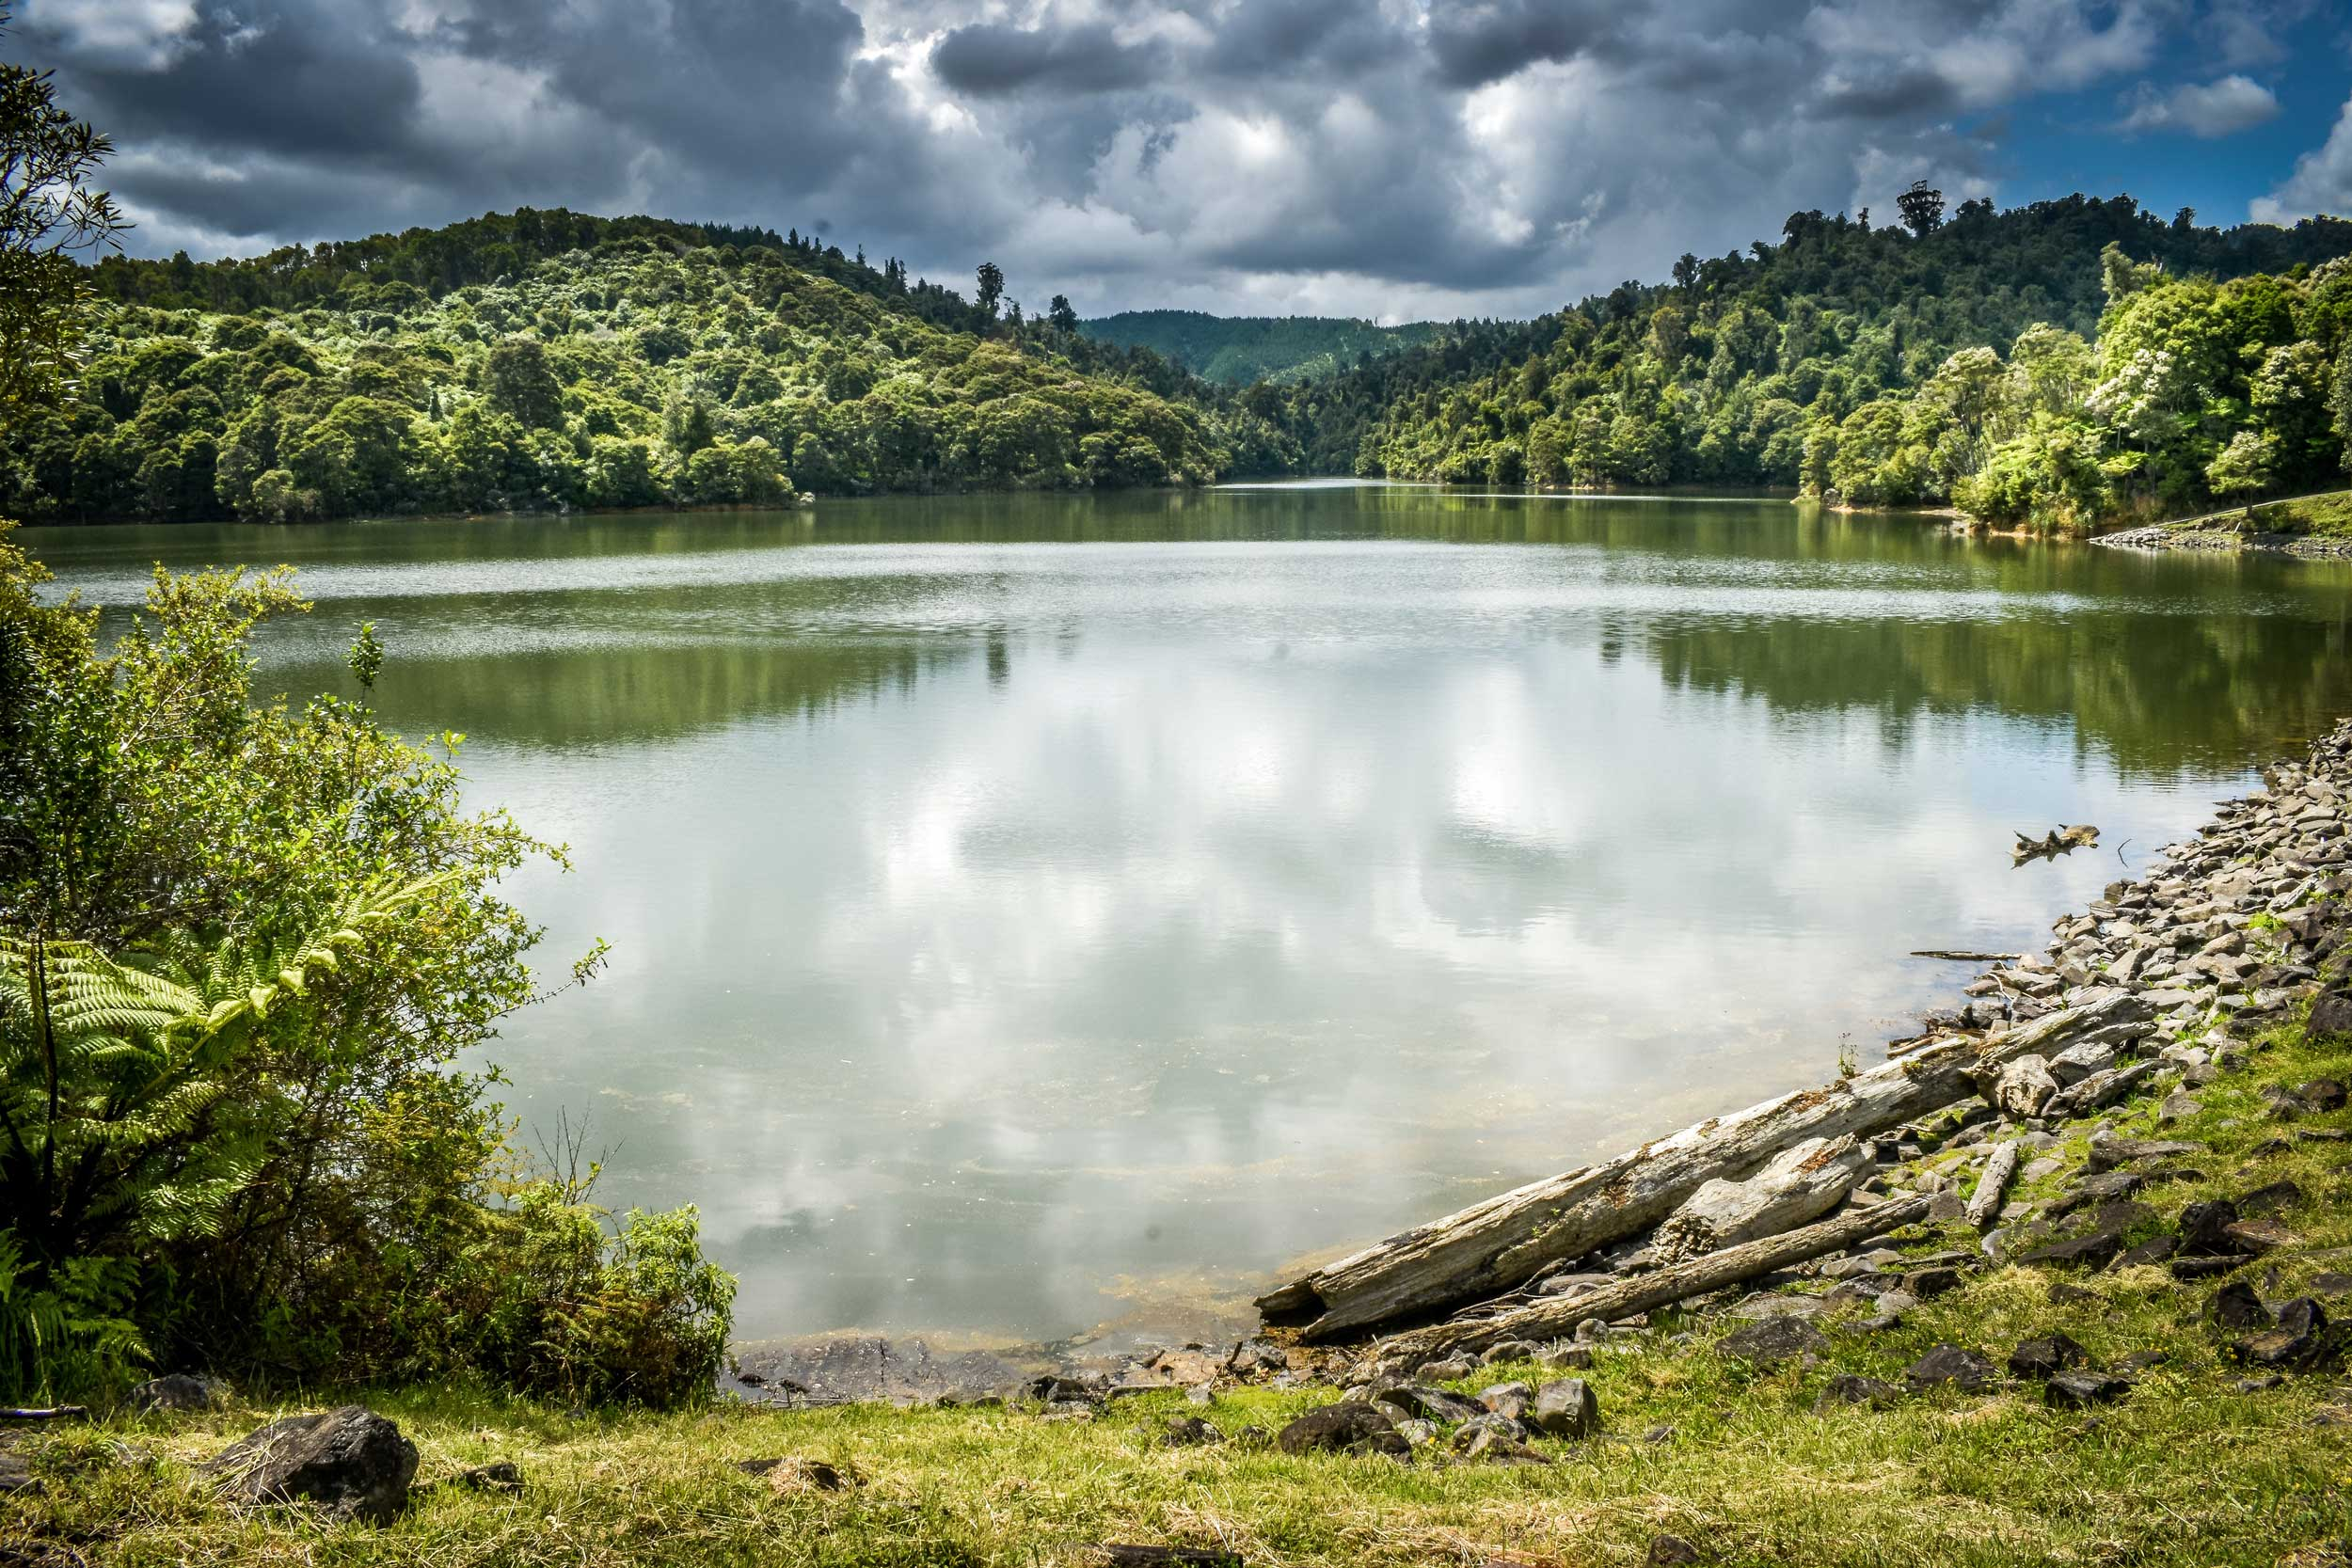 Tranquil lake set in green mountains, Hunua, Auckland